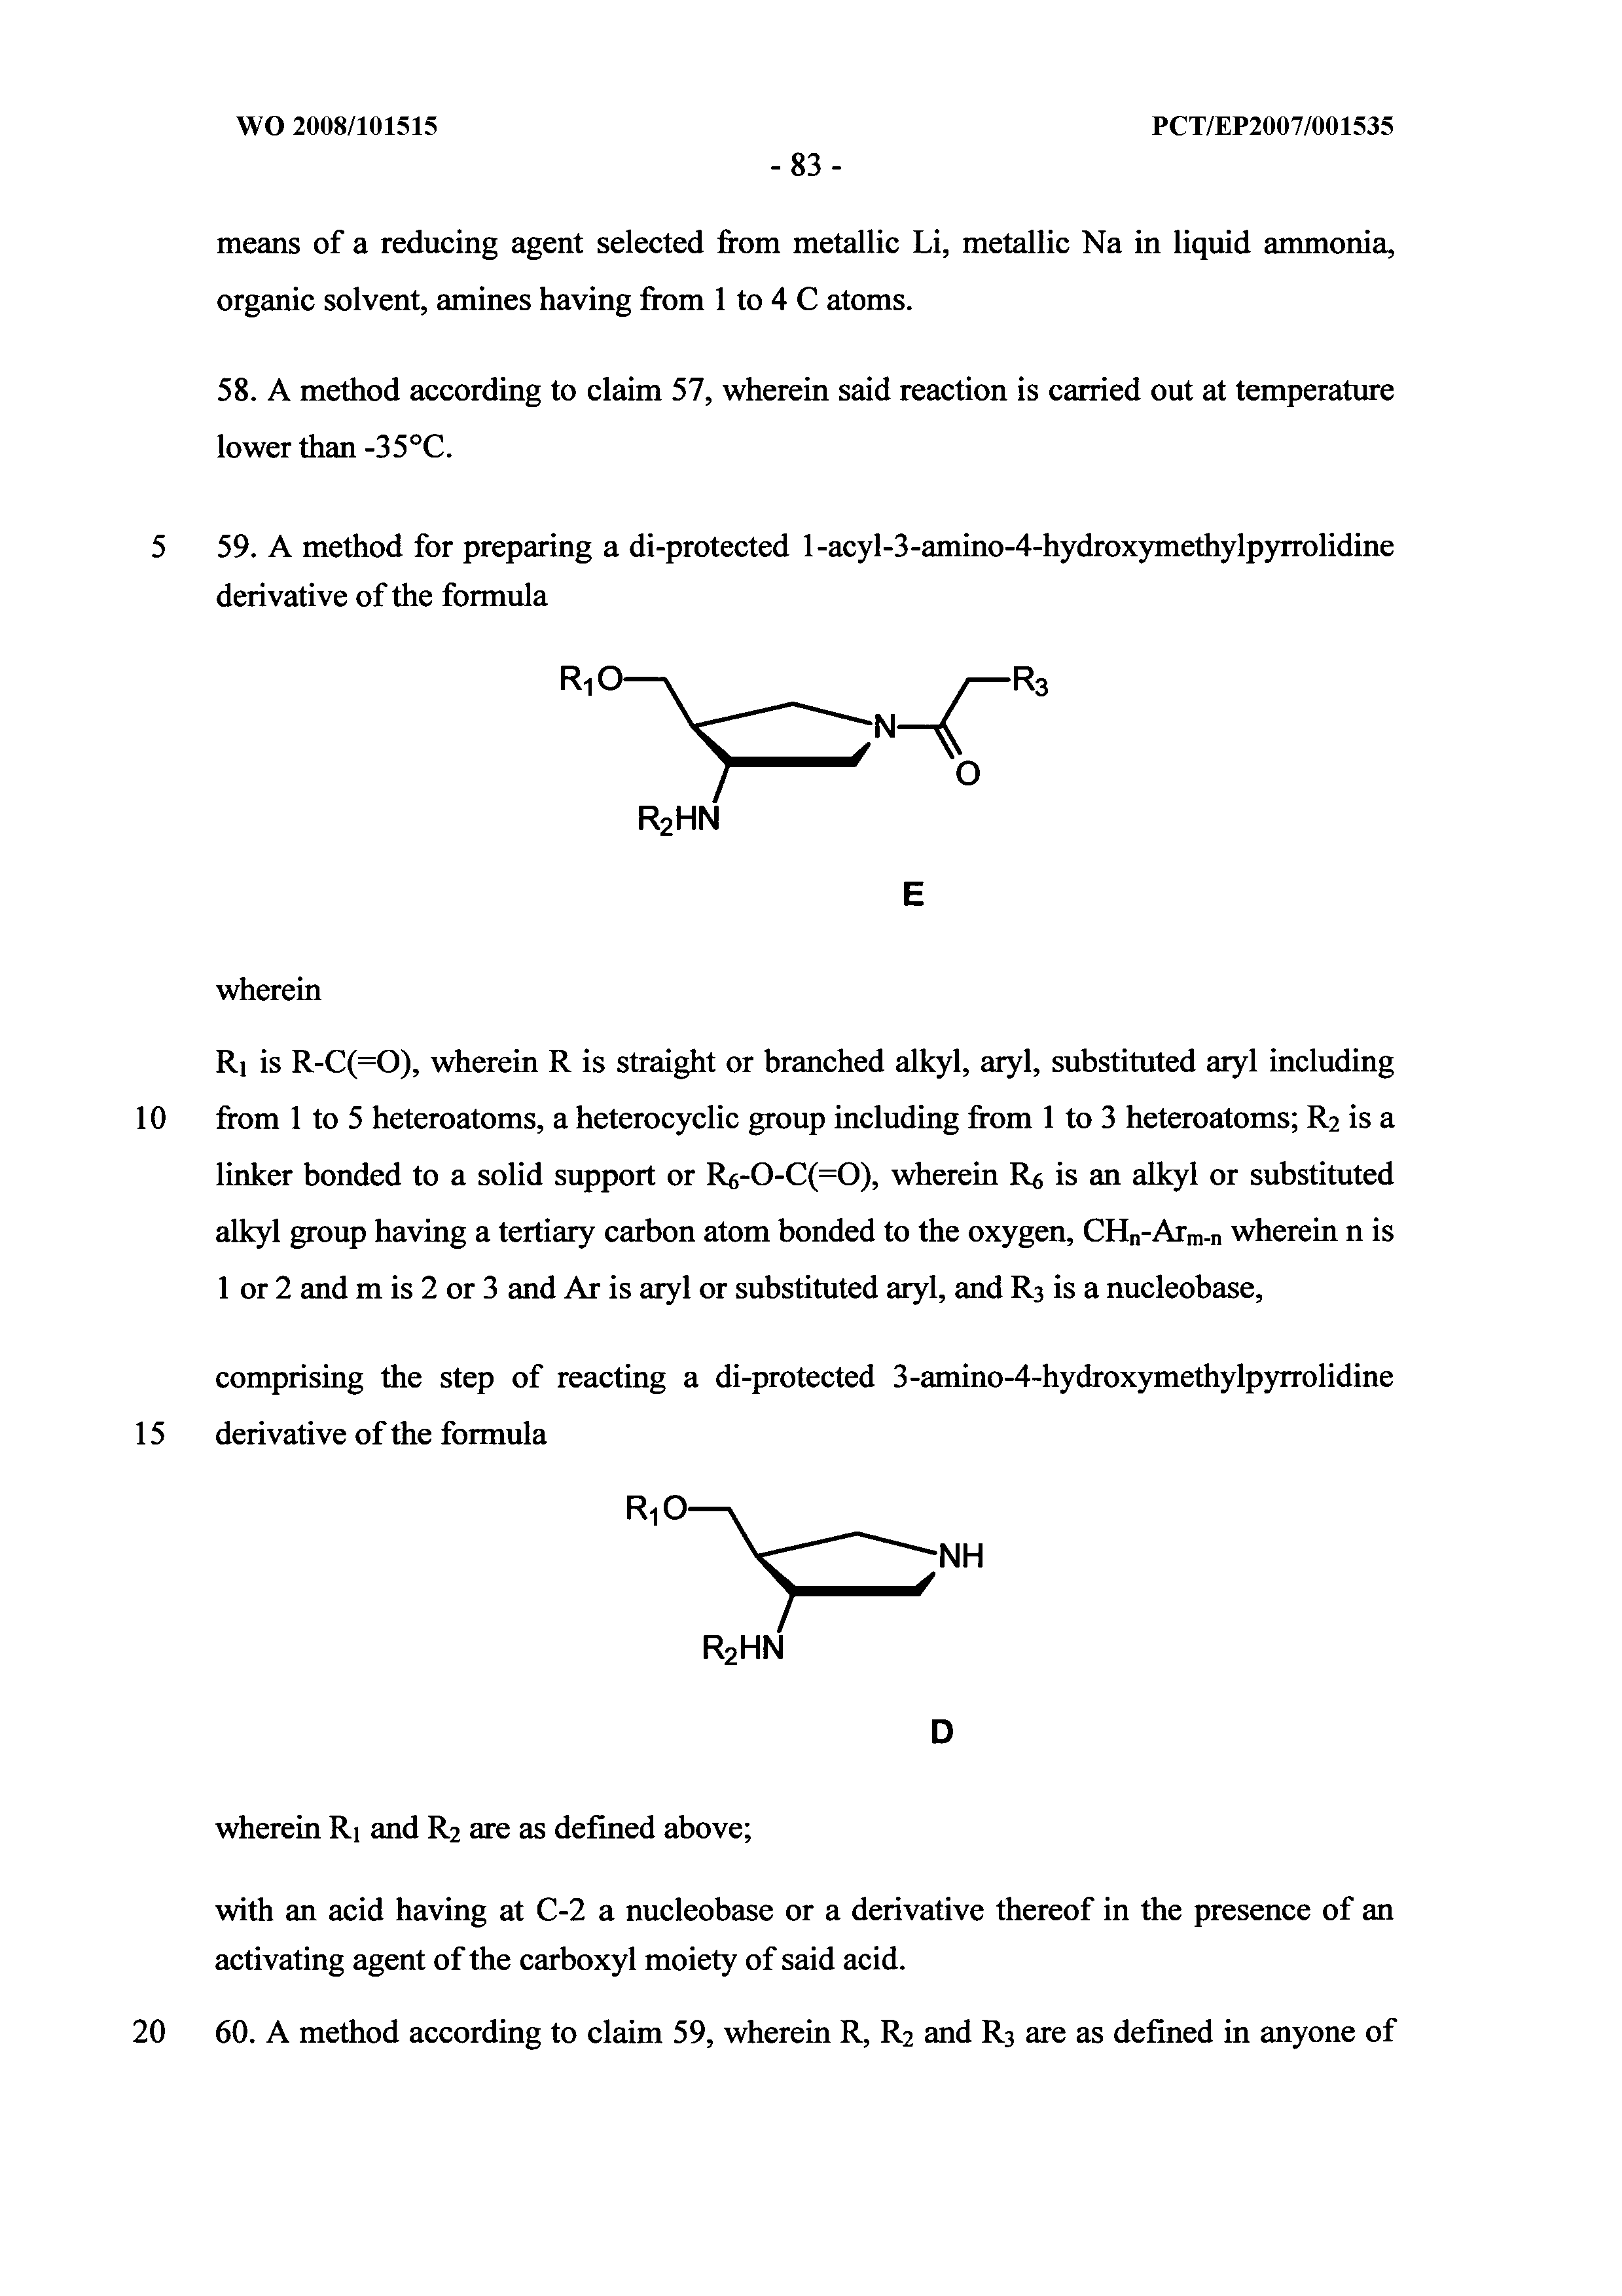 WO 2008/101515 A1 - New Synthons For The Synthesis Of Chiral Peptide